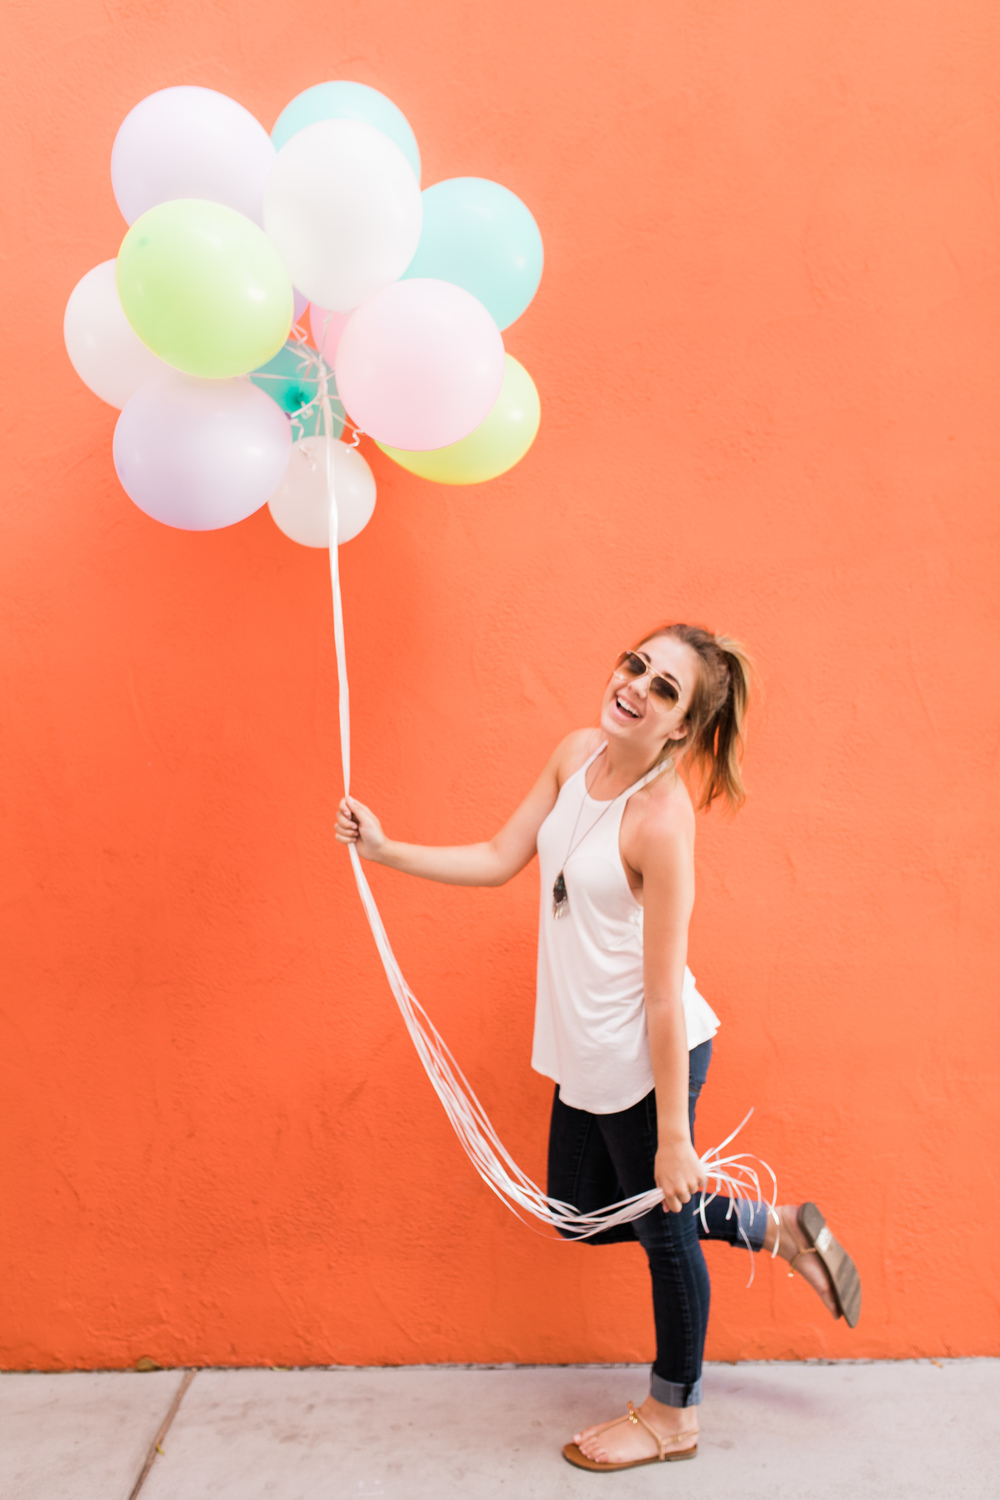 It's not very often that I get to step in front of a camera, but when I do... It's going to be in front of a bright orange wall with a bundle of pastel balloons! Who would-a thought this combo would work so well together?!